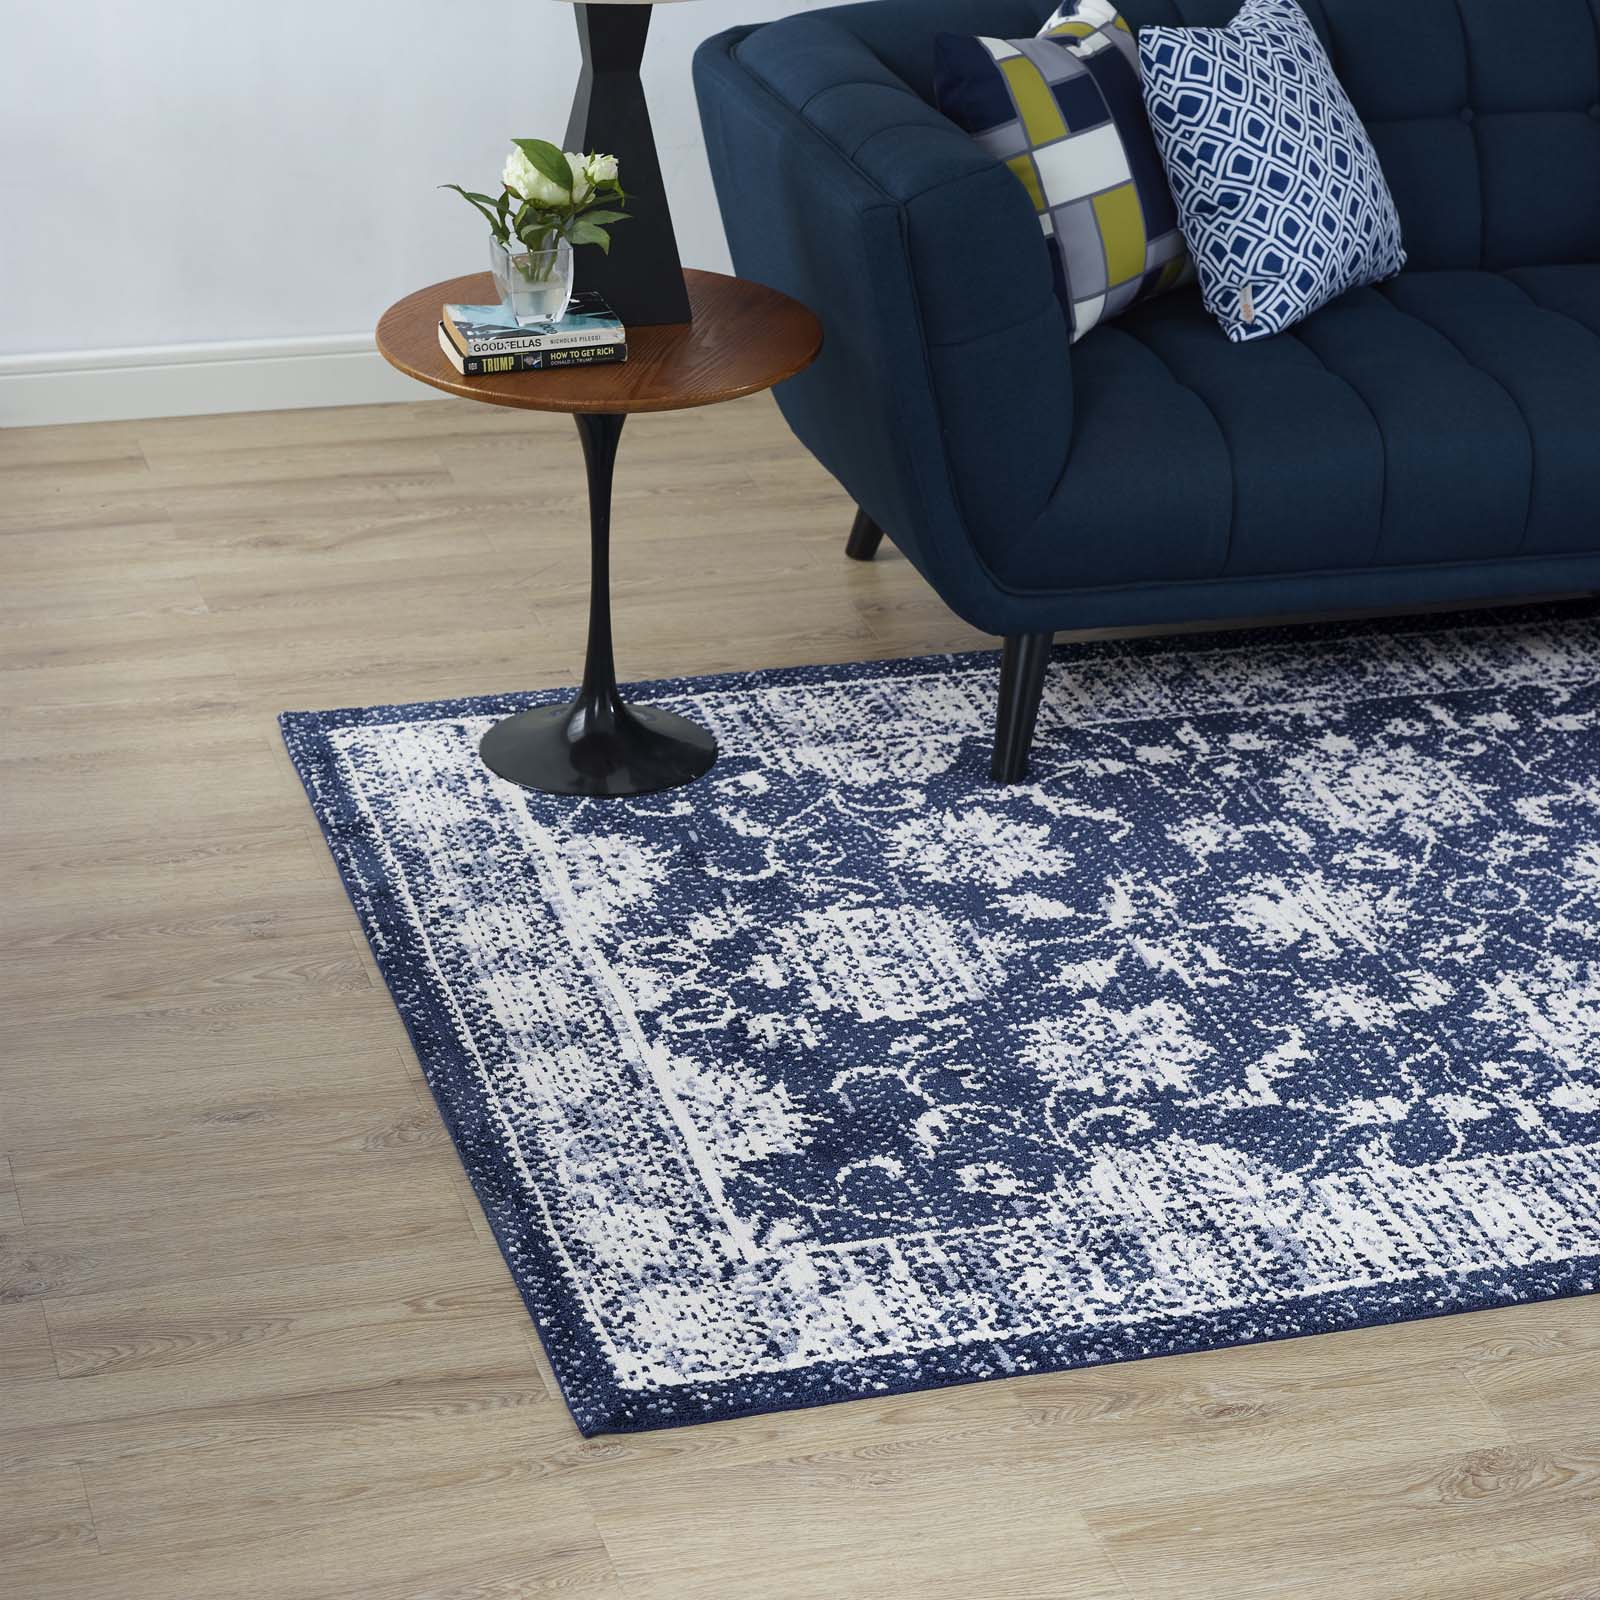 Kazia Distressed Floral Lattice 5x8 Area Rug Dark Blue and Ivory R-1020B-58